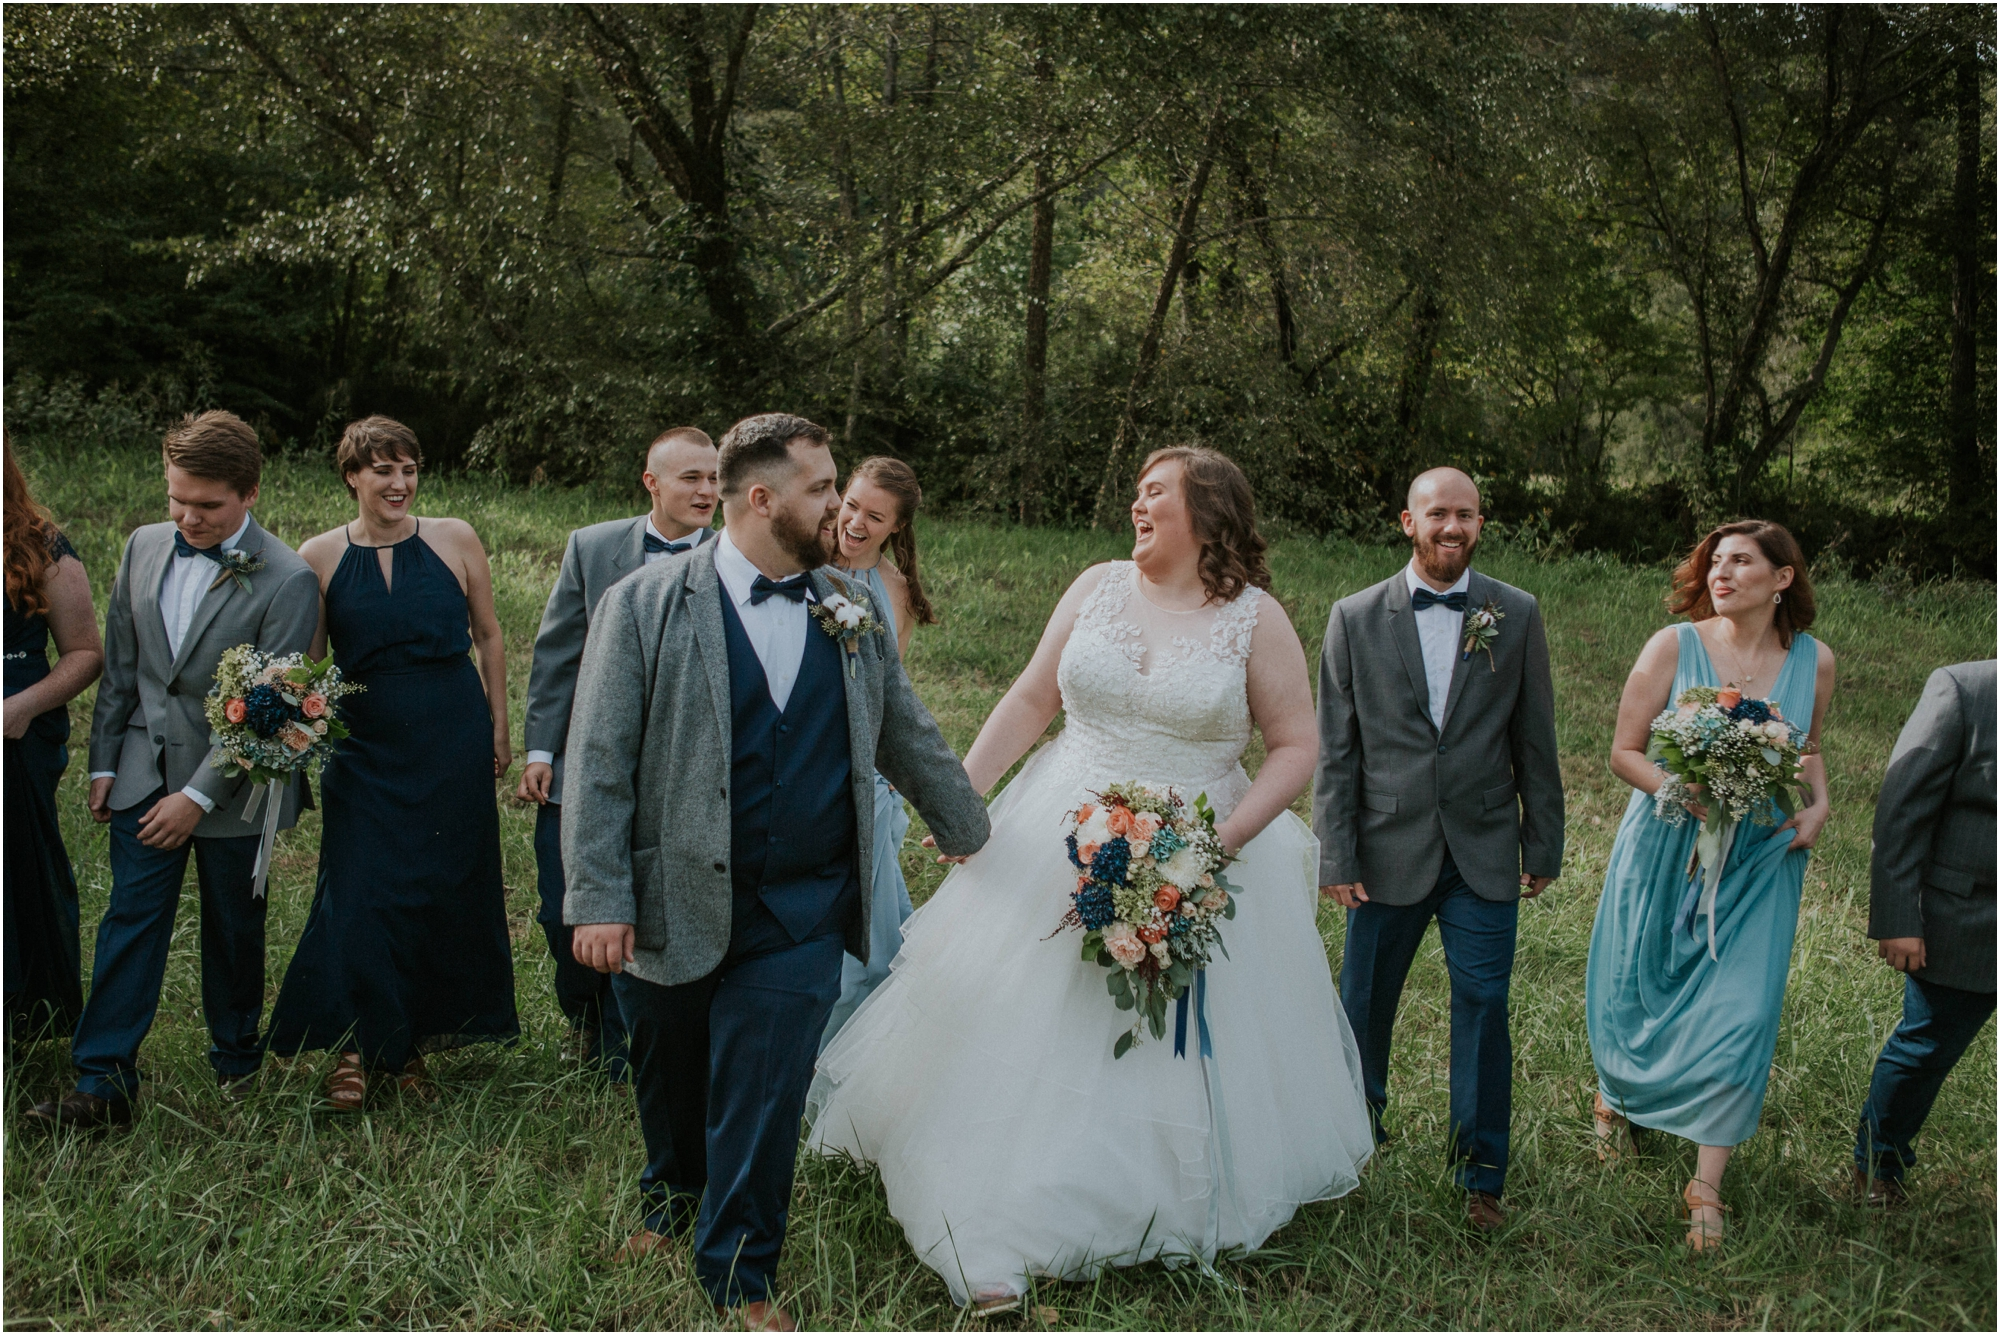 caryville-robbins-middle-tennessee-intimate-cozy-fall-navy-rustic-backyard-wedding_0069.jpg